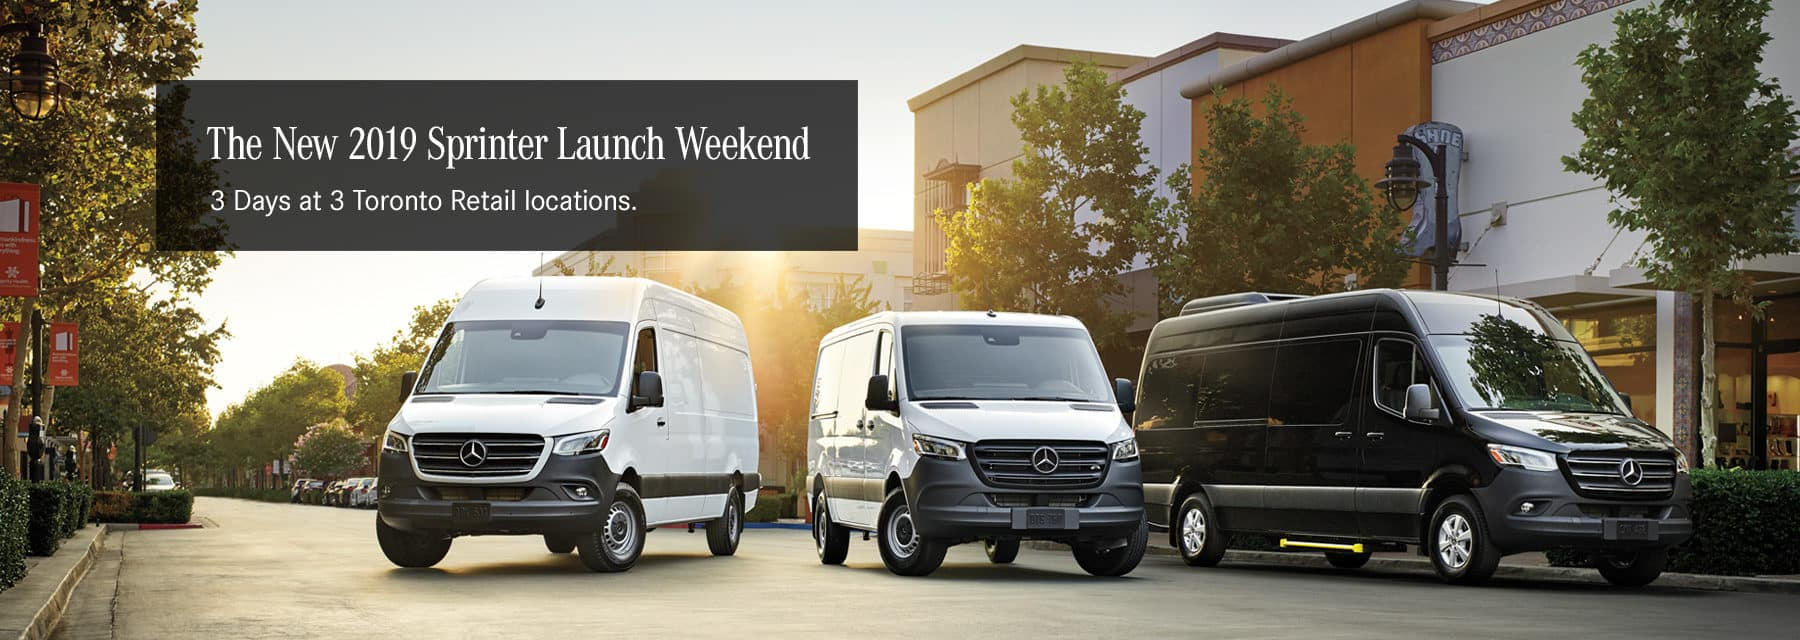 1800x640_SLIDER_Vans_2019-Sprinter-Launch_v2